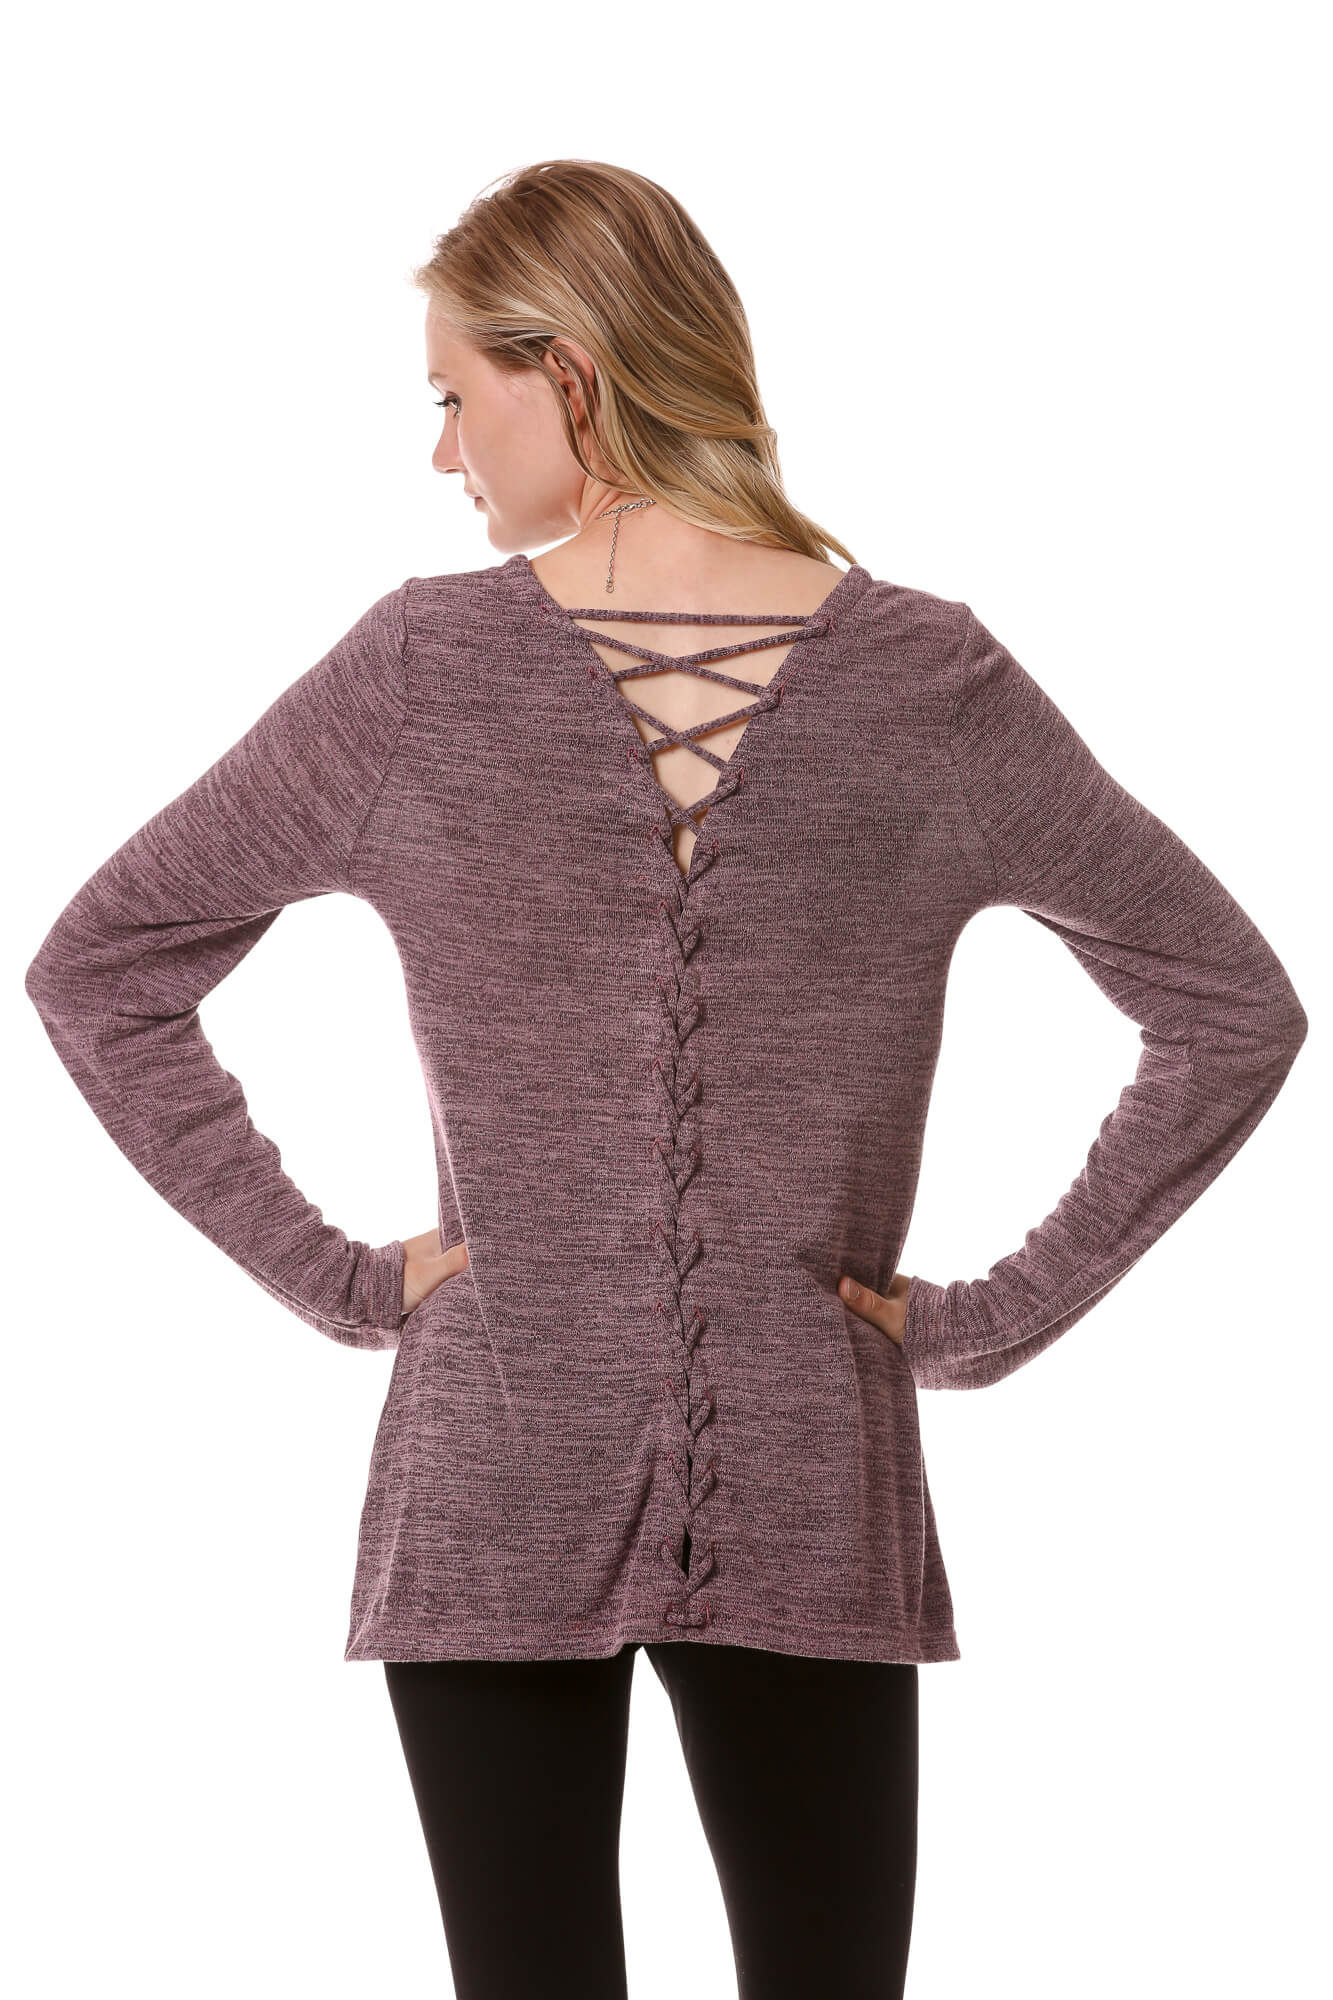 Women's Long Sleeve Lace Up Back Top | Basic Cozy Scoop Neck in Purple | Neesha